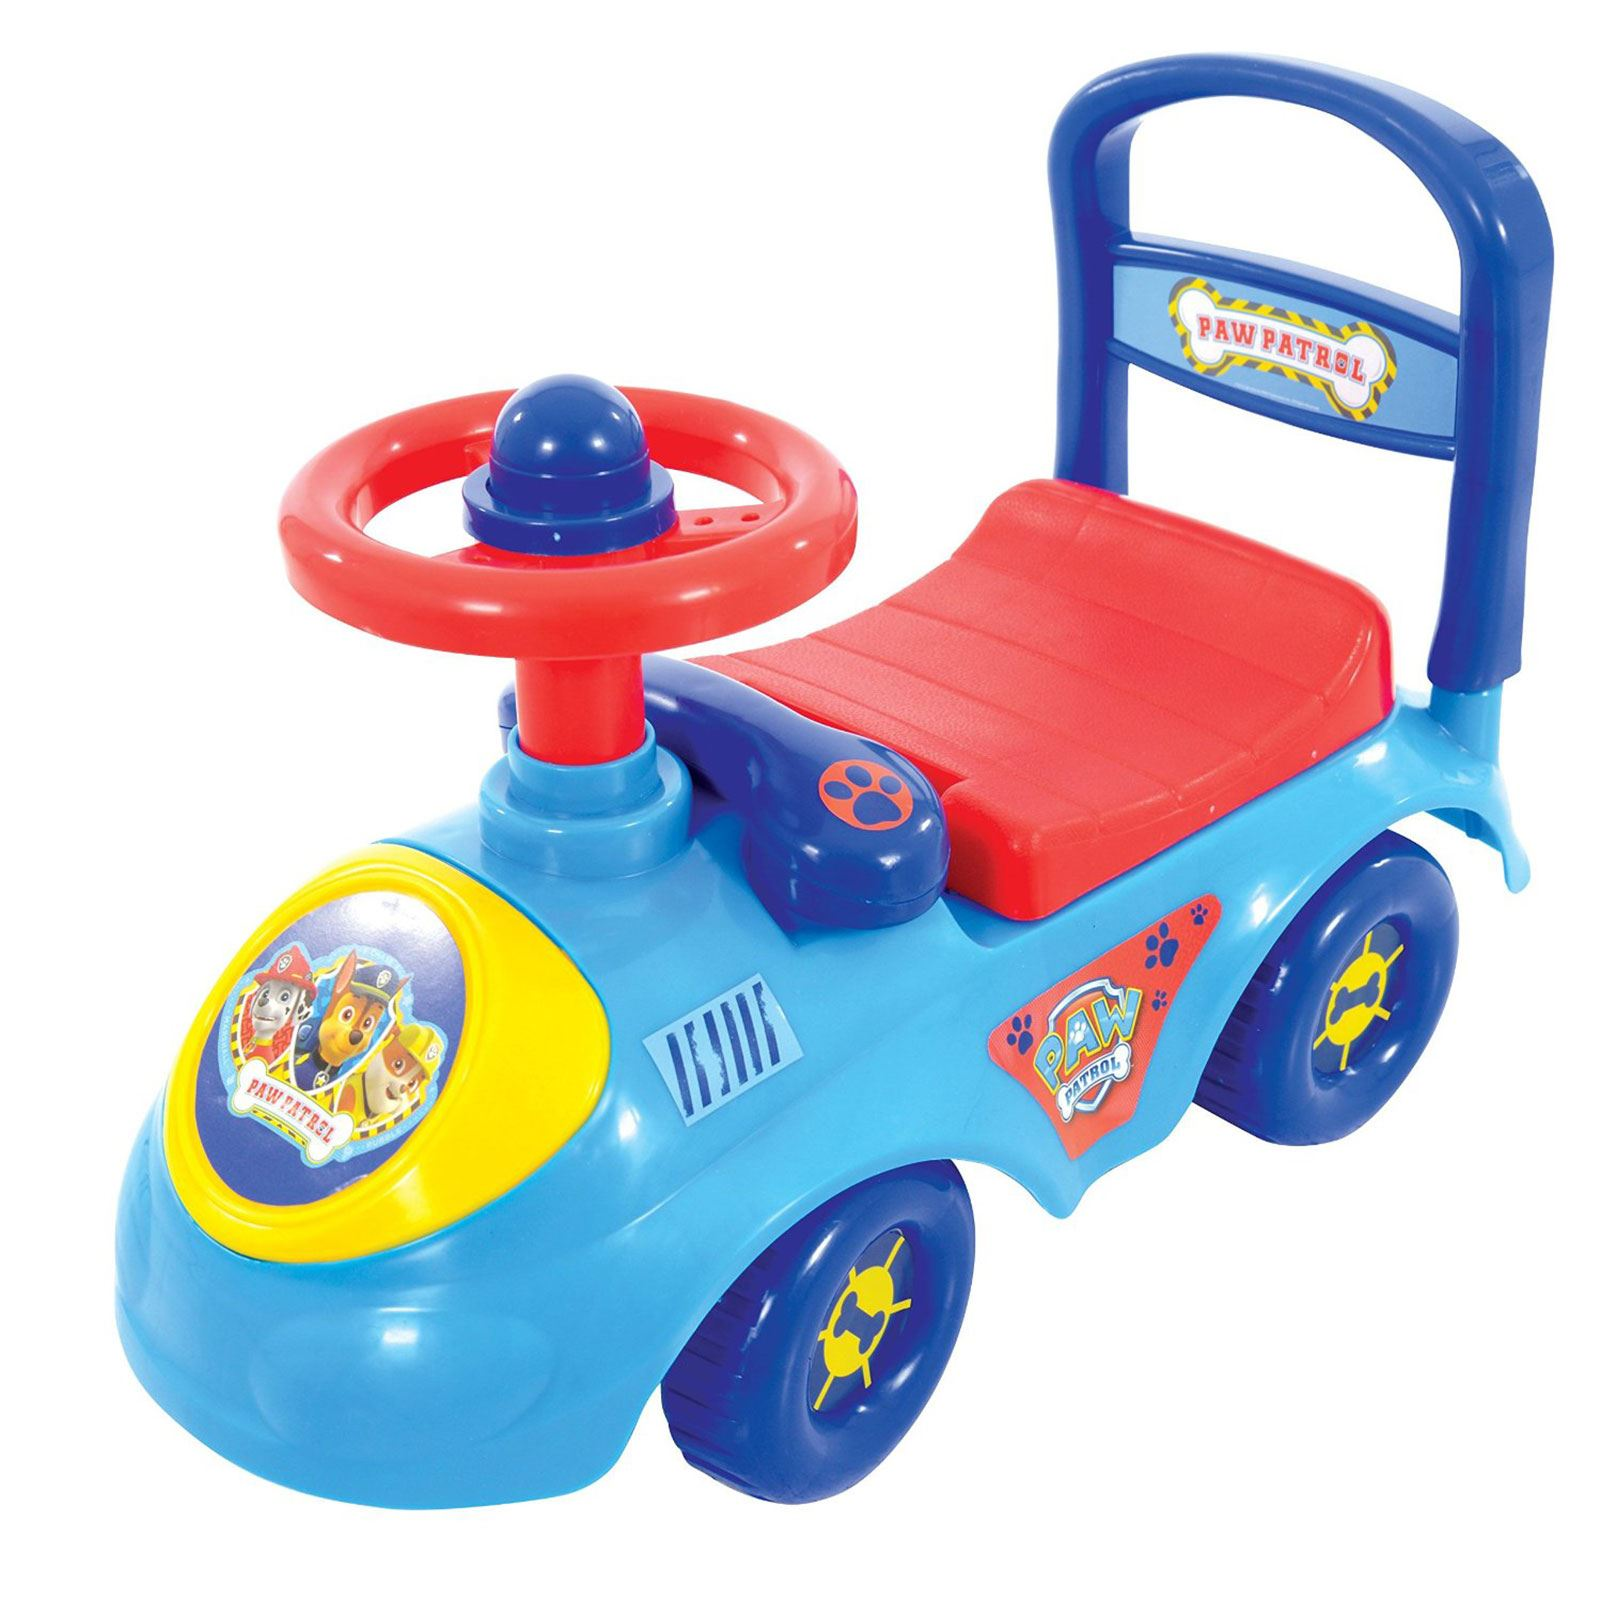 KIDS MY FIRST RIDE ON & WALKER AGE 1 THOMAS PAW PATROL PEPPA